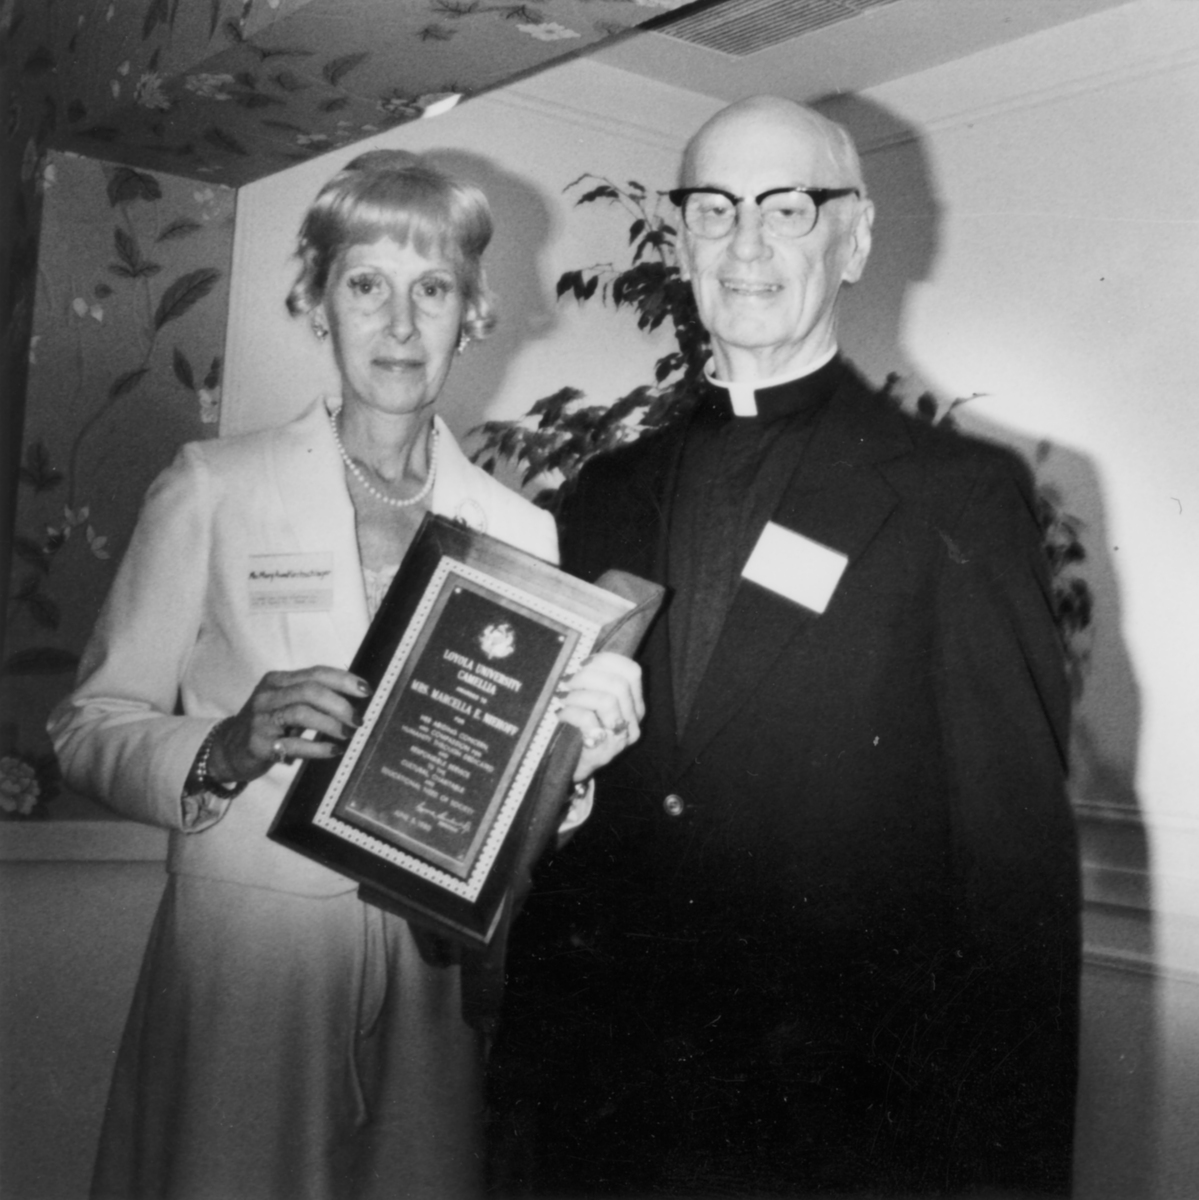 Mary Anne Kirchschlager, daughter of Marcella Niehoff, receiving the Camellia Award for Mrs. Marcella Neihoff